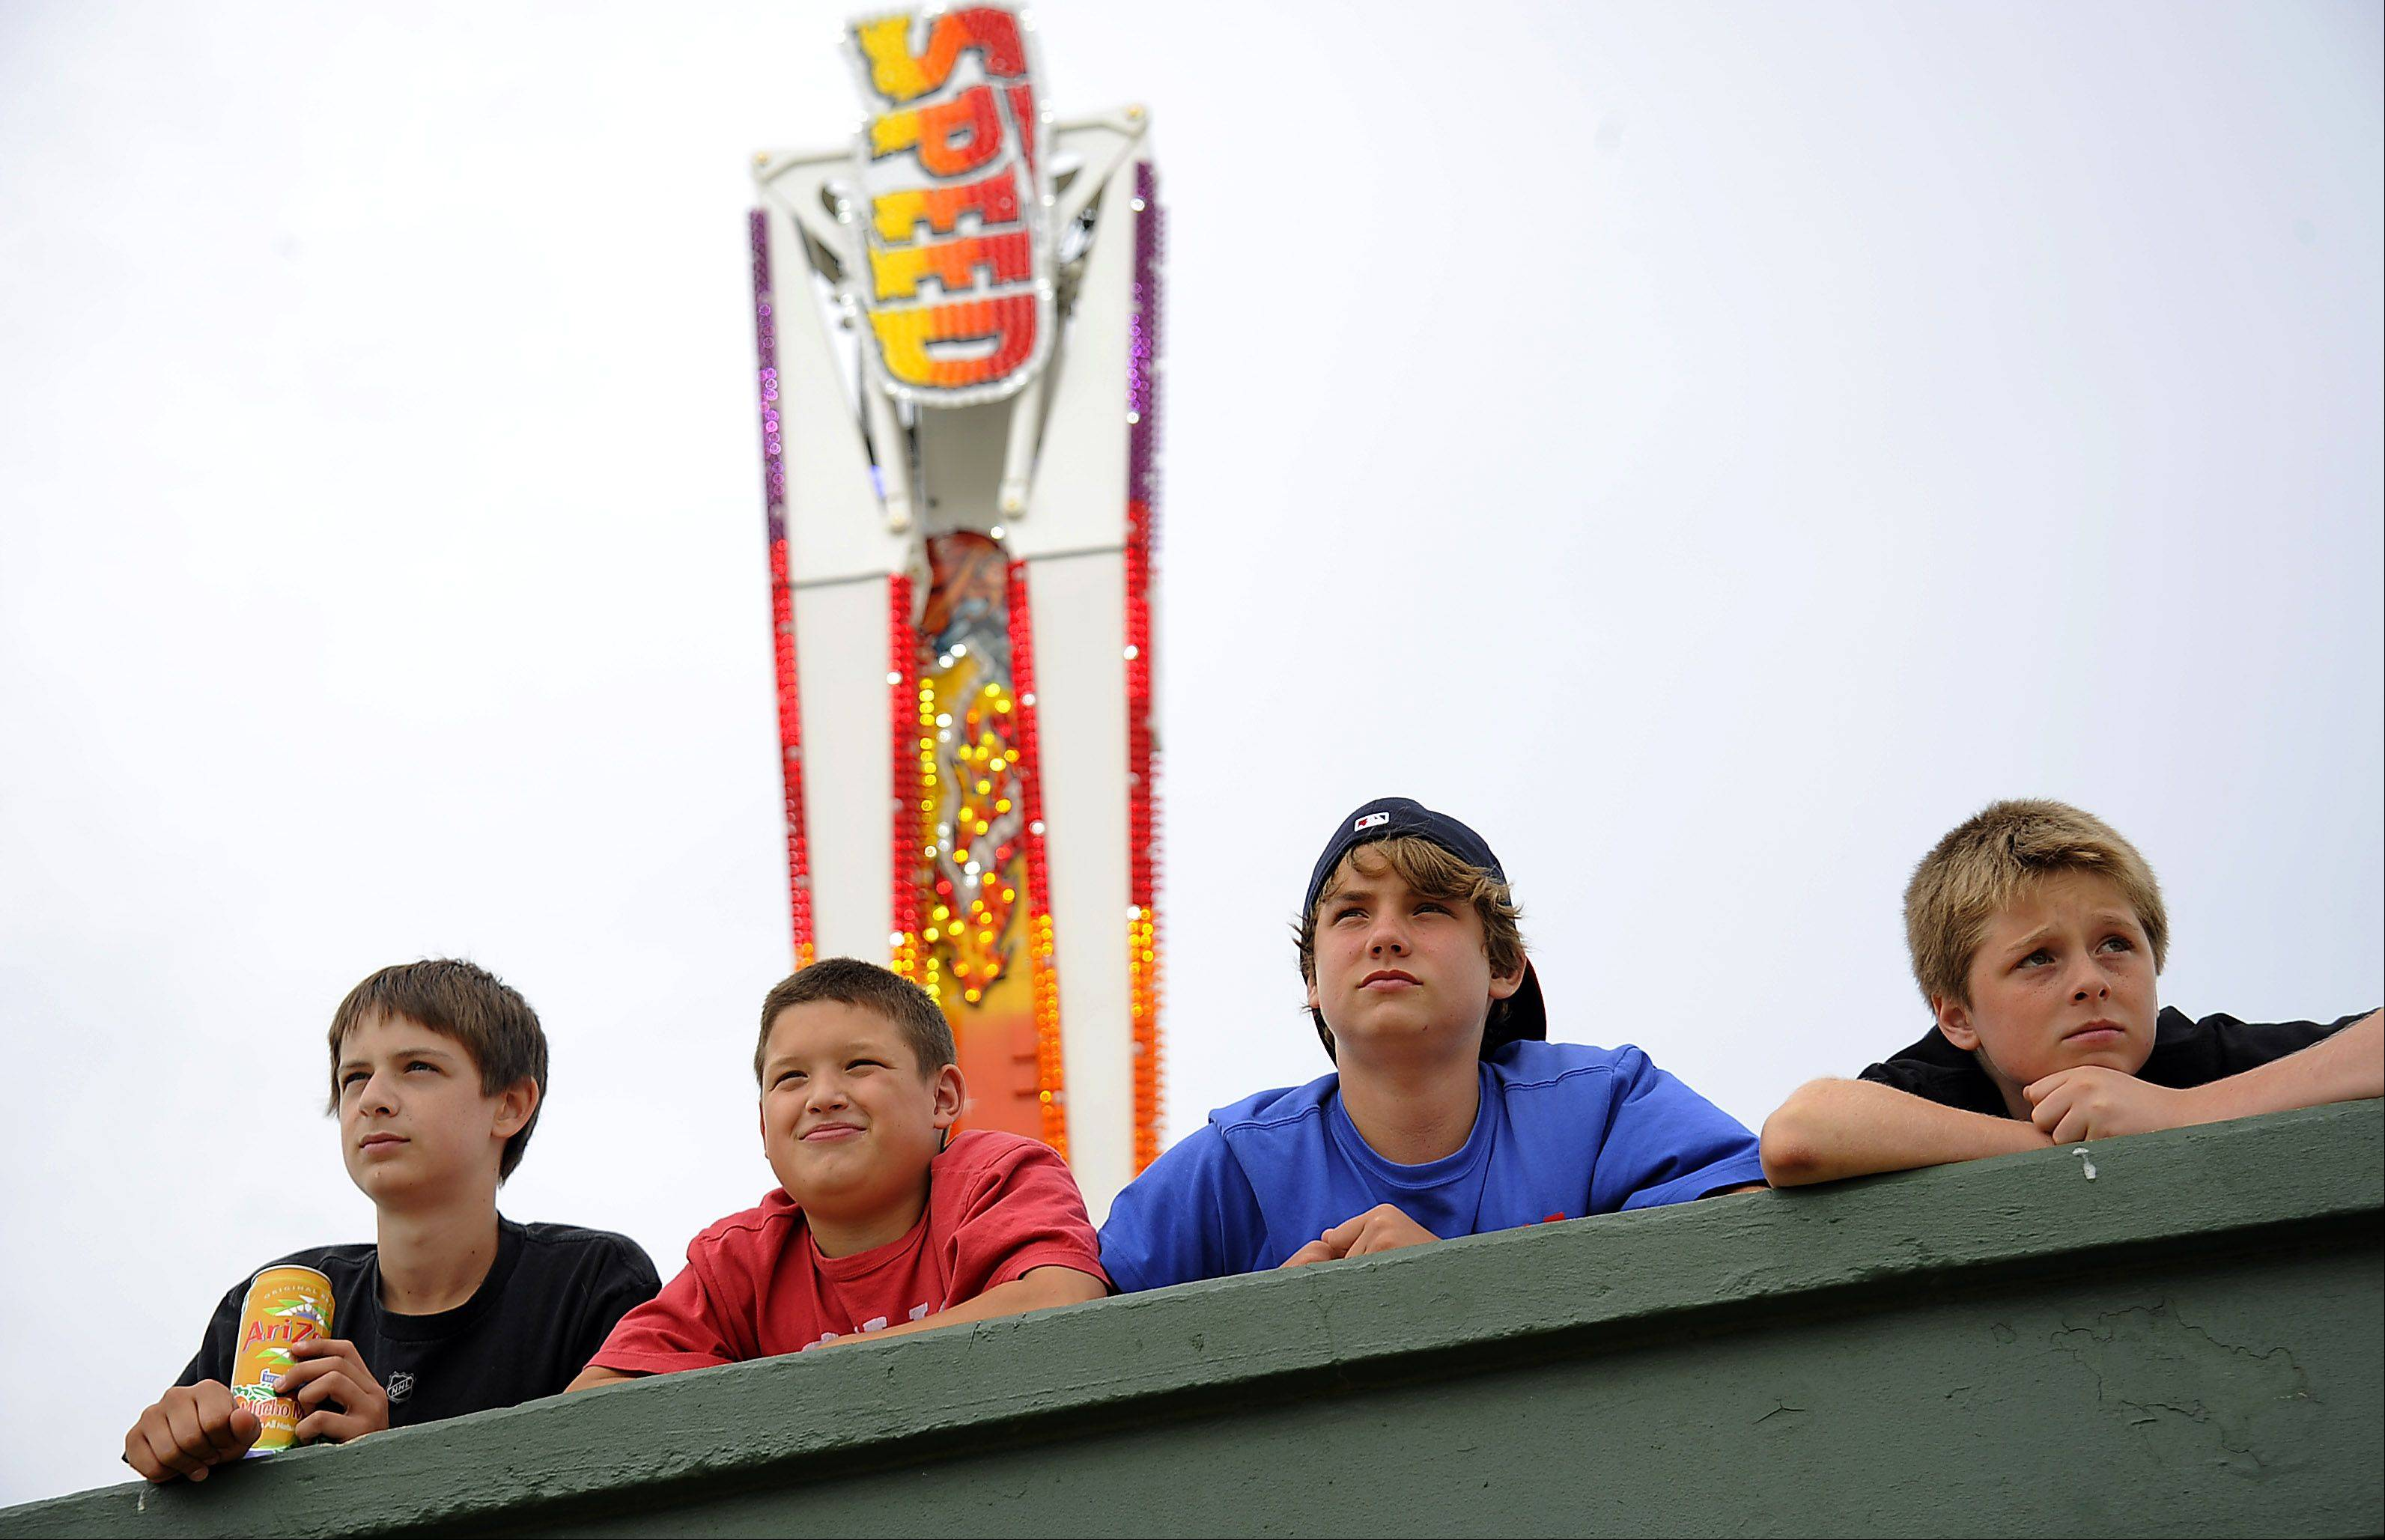 Watching the Arlington Heights Frontier days festival come to life as they lay on a baseball dugout are Kevin Donohue, 13, Jace O'Hara, 12, Riley Rundquist, 12, and Joey Belmonte, 12, all of Arlington Heights. The workers were putting the rides together for 4th of July activities.